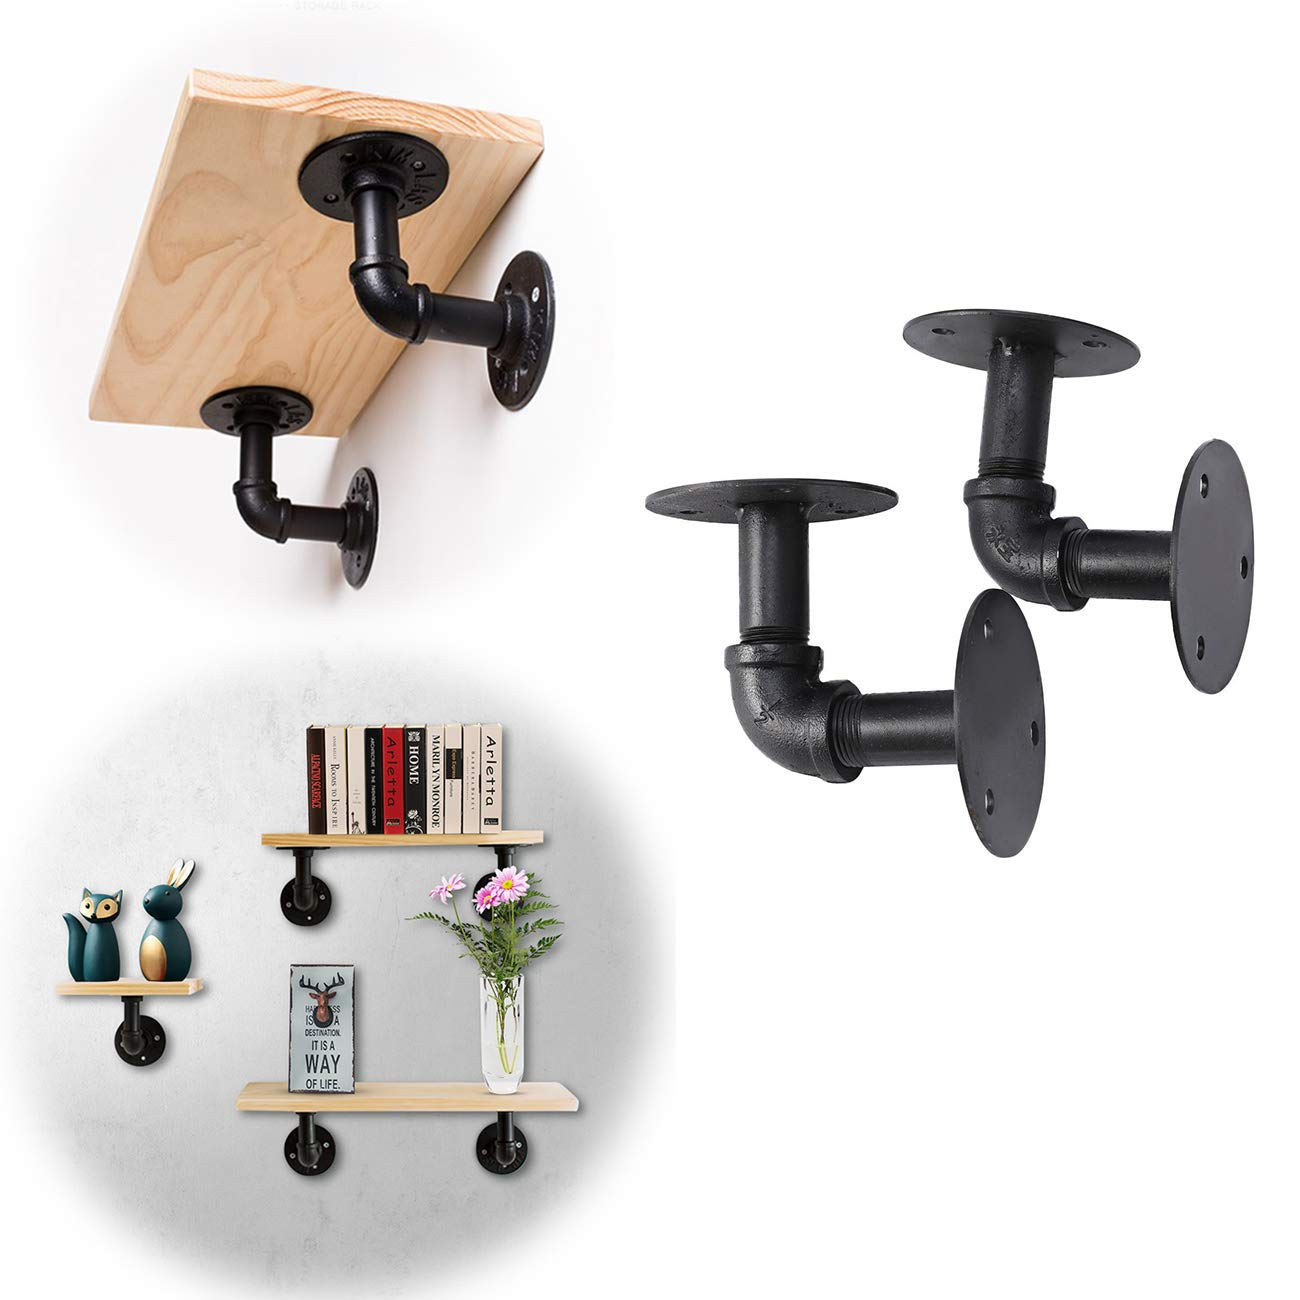 Pipe Shelf Bracket, Dyna-living 2PCS 10x10cm Shelves Support Hanger Wall Mounted Retro Industrial Plumbing Floating Restoration Hardware for Book Shop Shoes Bags Photo Frames Storage